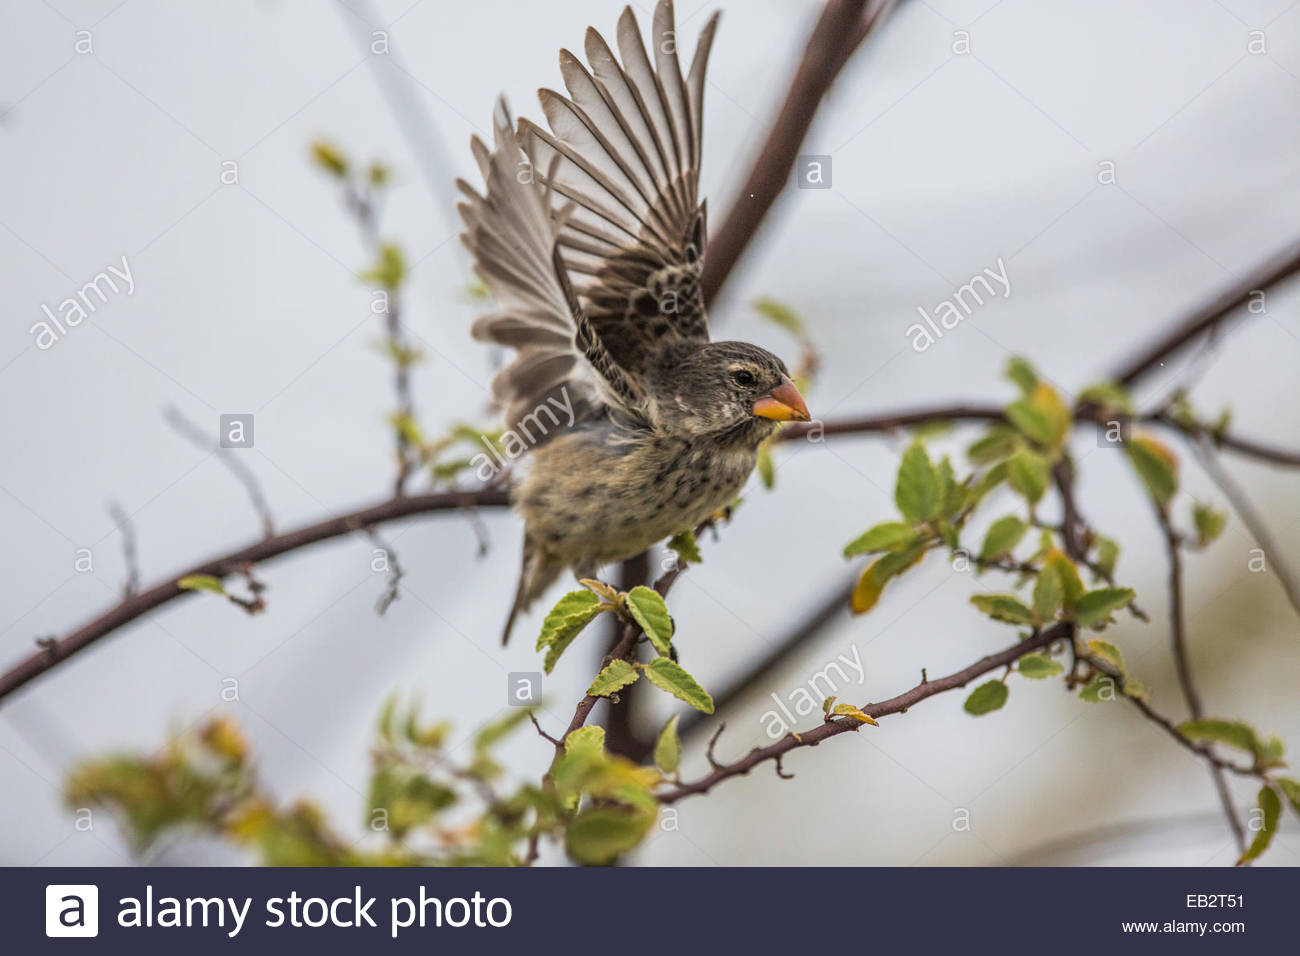 A Darwin finch with spread wings in Galapagos National Park. - Stock Image